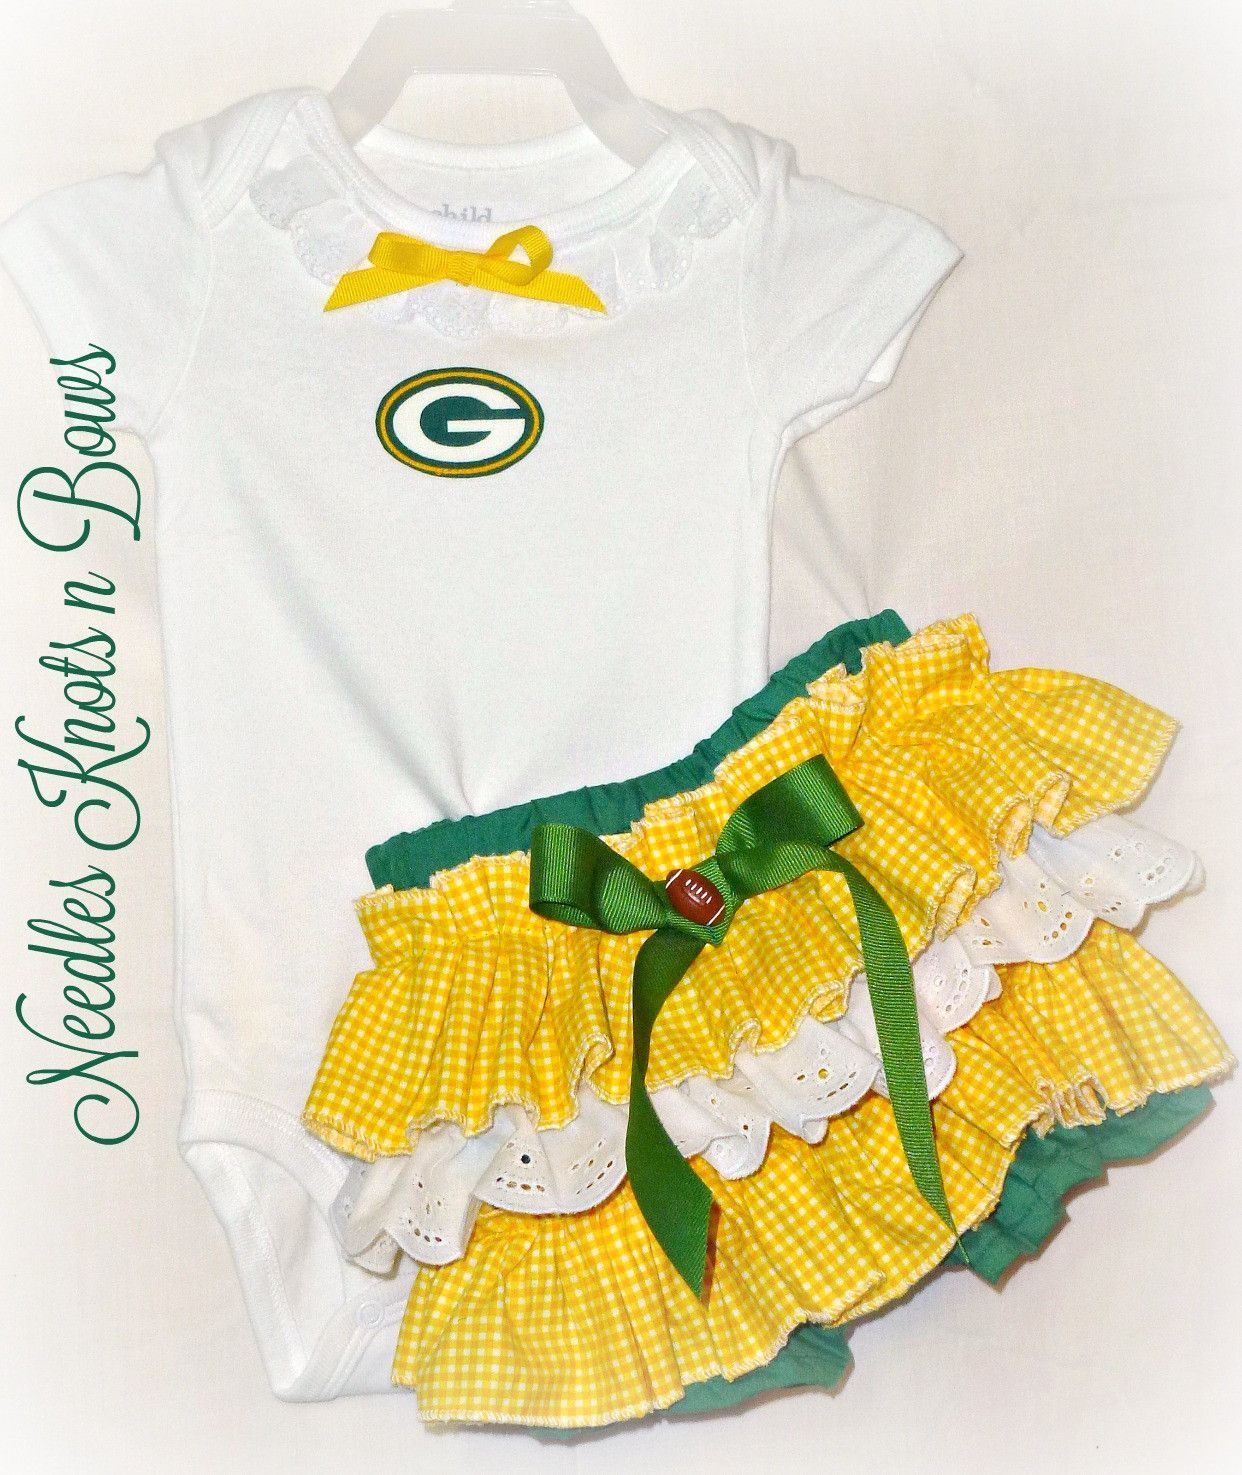 Girls Greenbay Packers Cheerleader Outfit Baby Girls Packers Football Game Day Outfit Coming Home Outfit Girls Coming Home Outfit Coming Home Outfit Home Outfit